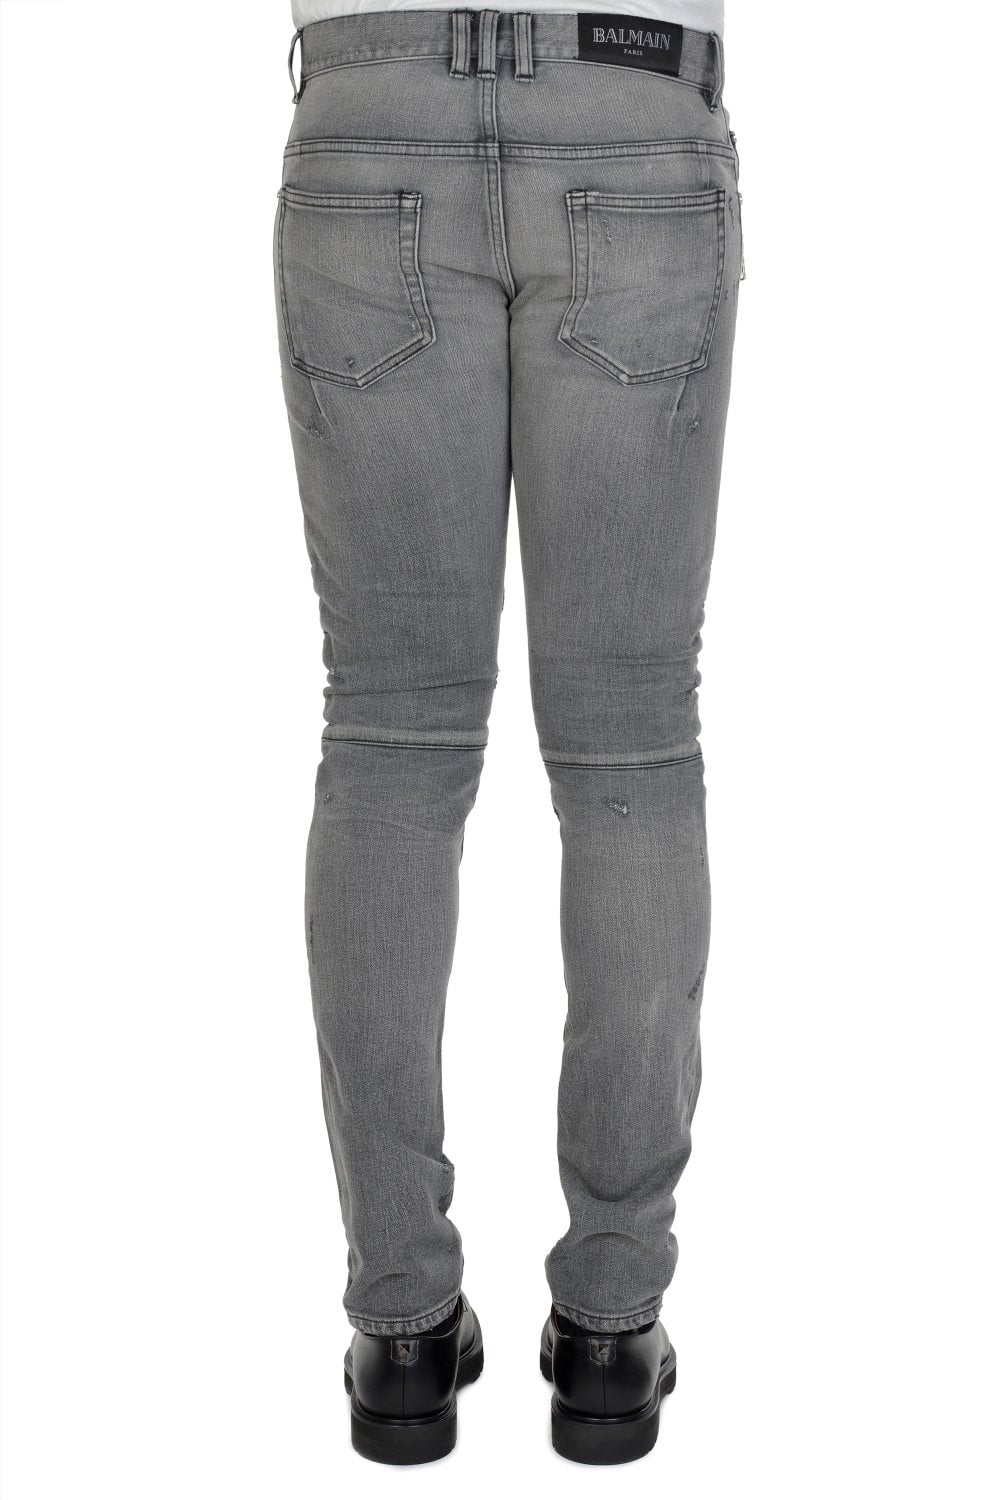 ff3fe4e06de BALMAIN Balmain Distressed Biker Skinny Jeans - Clothing from Circle ...